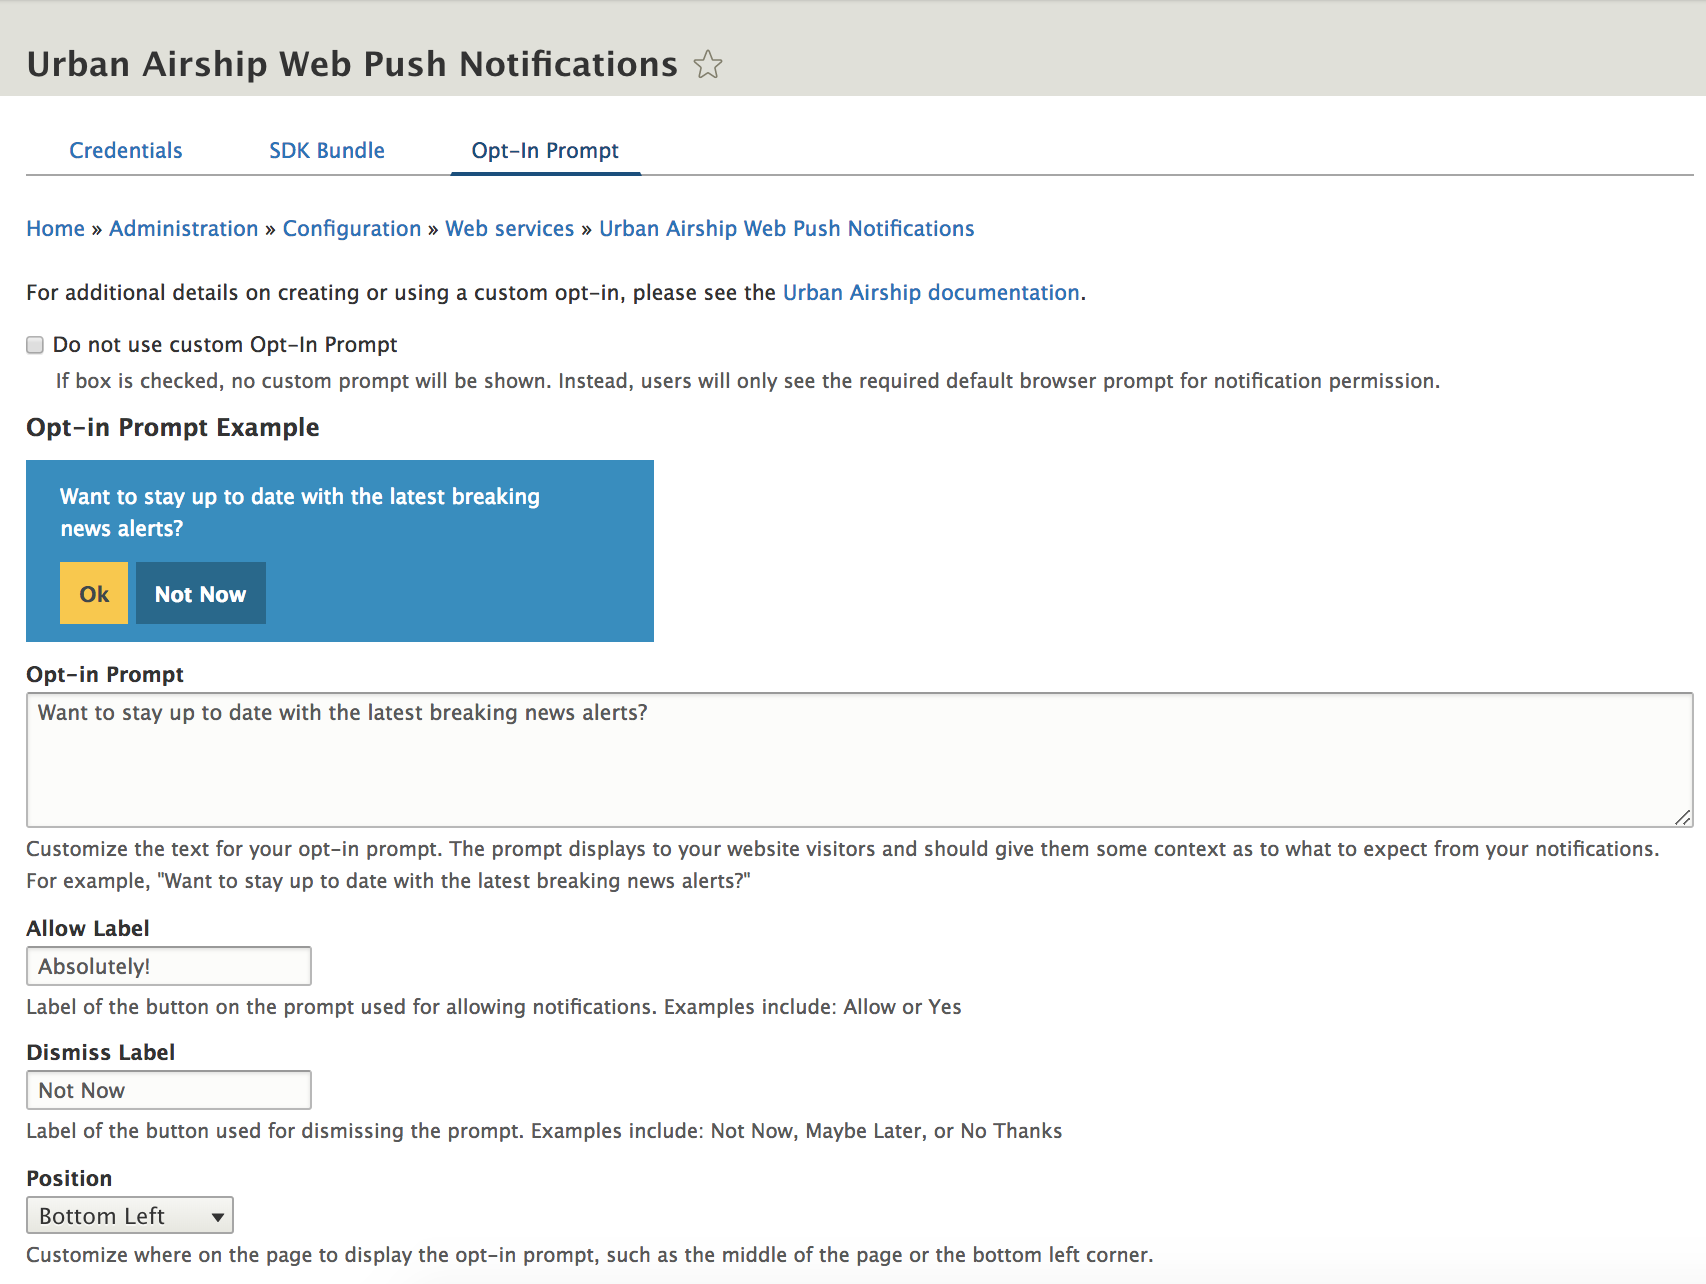 drupal-opt-in-prompt-settings-urban-airship-web-notifications.png